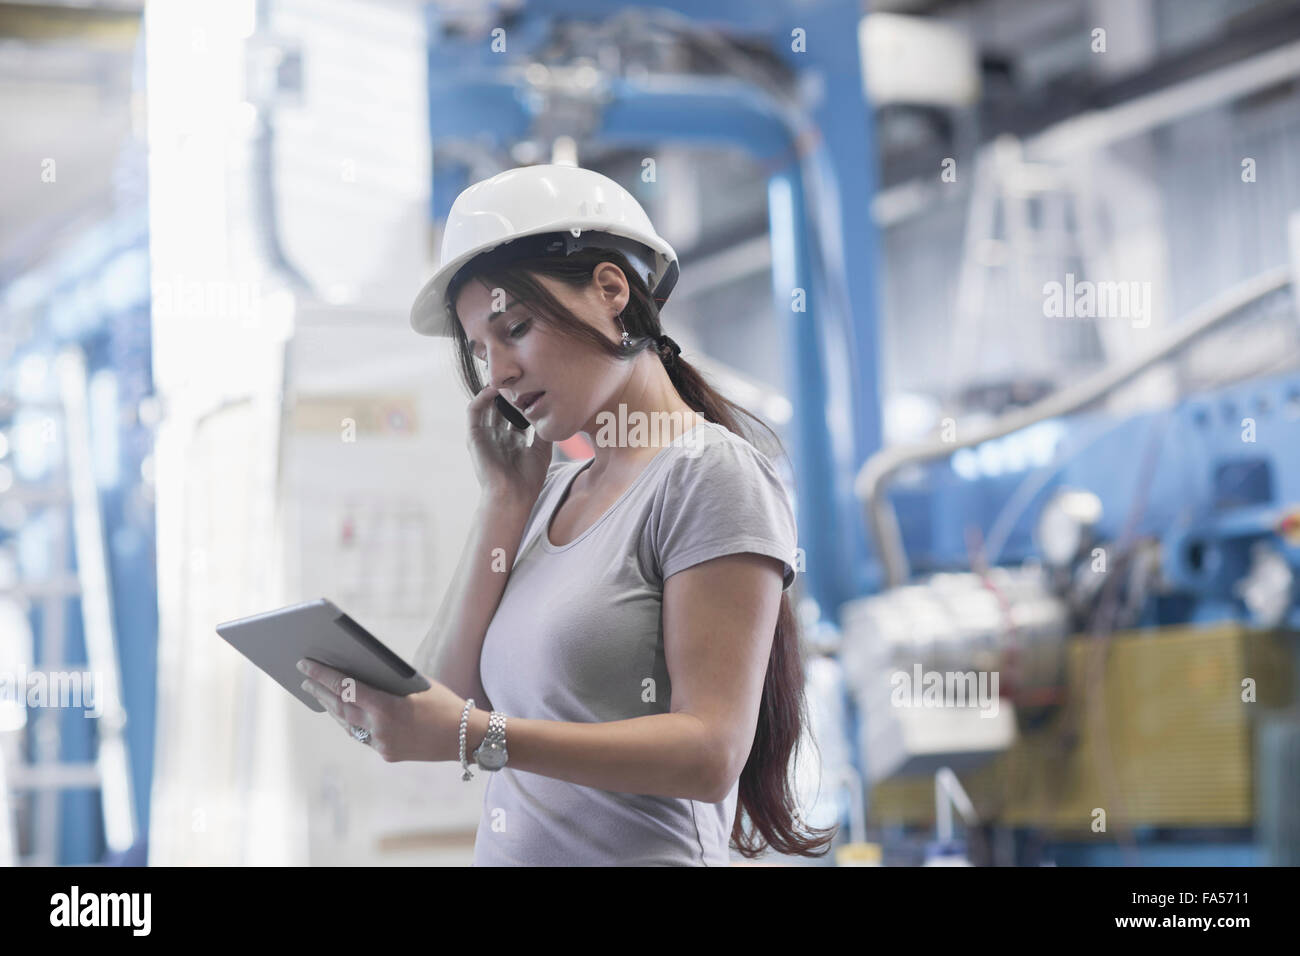 Female engineer using a digital tablet and mobile phone in an industrial plant, Baden-Württemberg, Germany Stock Photo